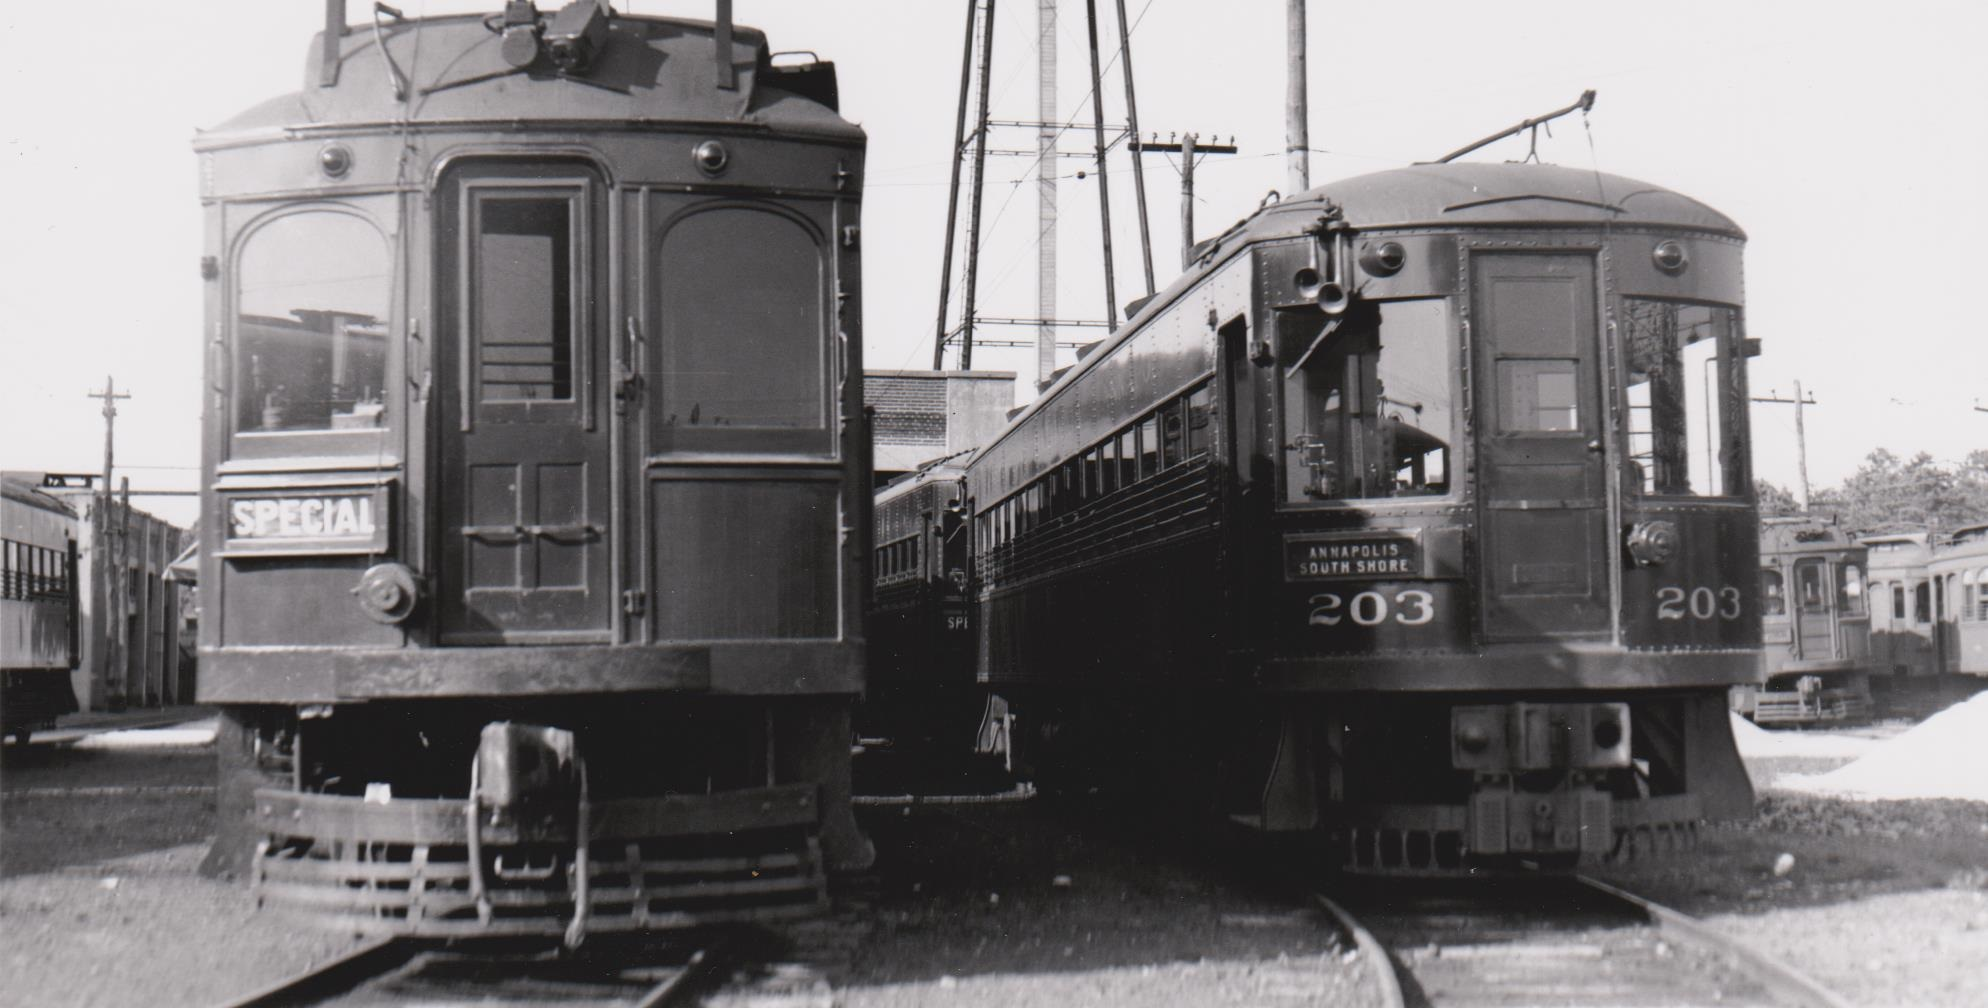 Washington, Baltimore & Annapolis Railroad Cars at Naval Academy Junction. Date: Unknown. Source: Hugh Hayes Collection.